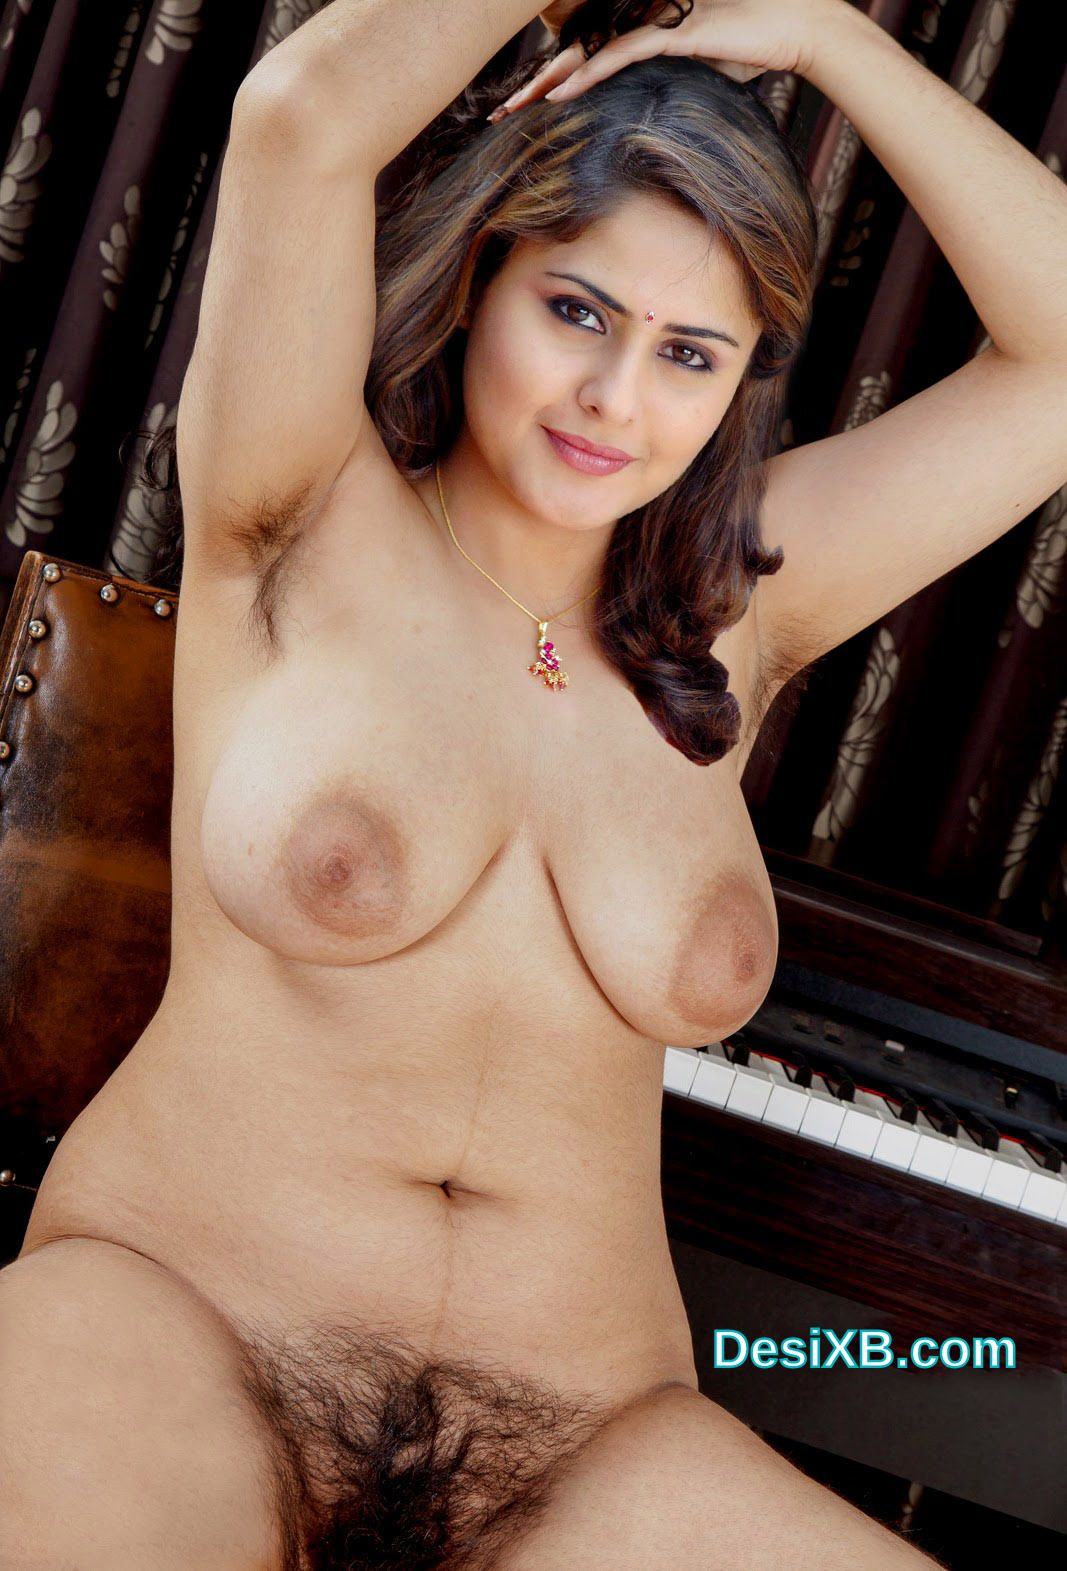 Hot naked girls hairy pussys